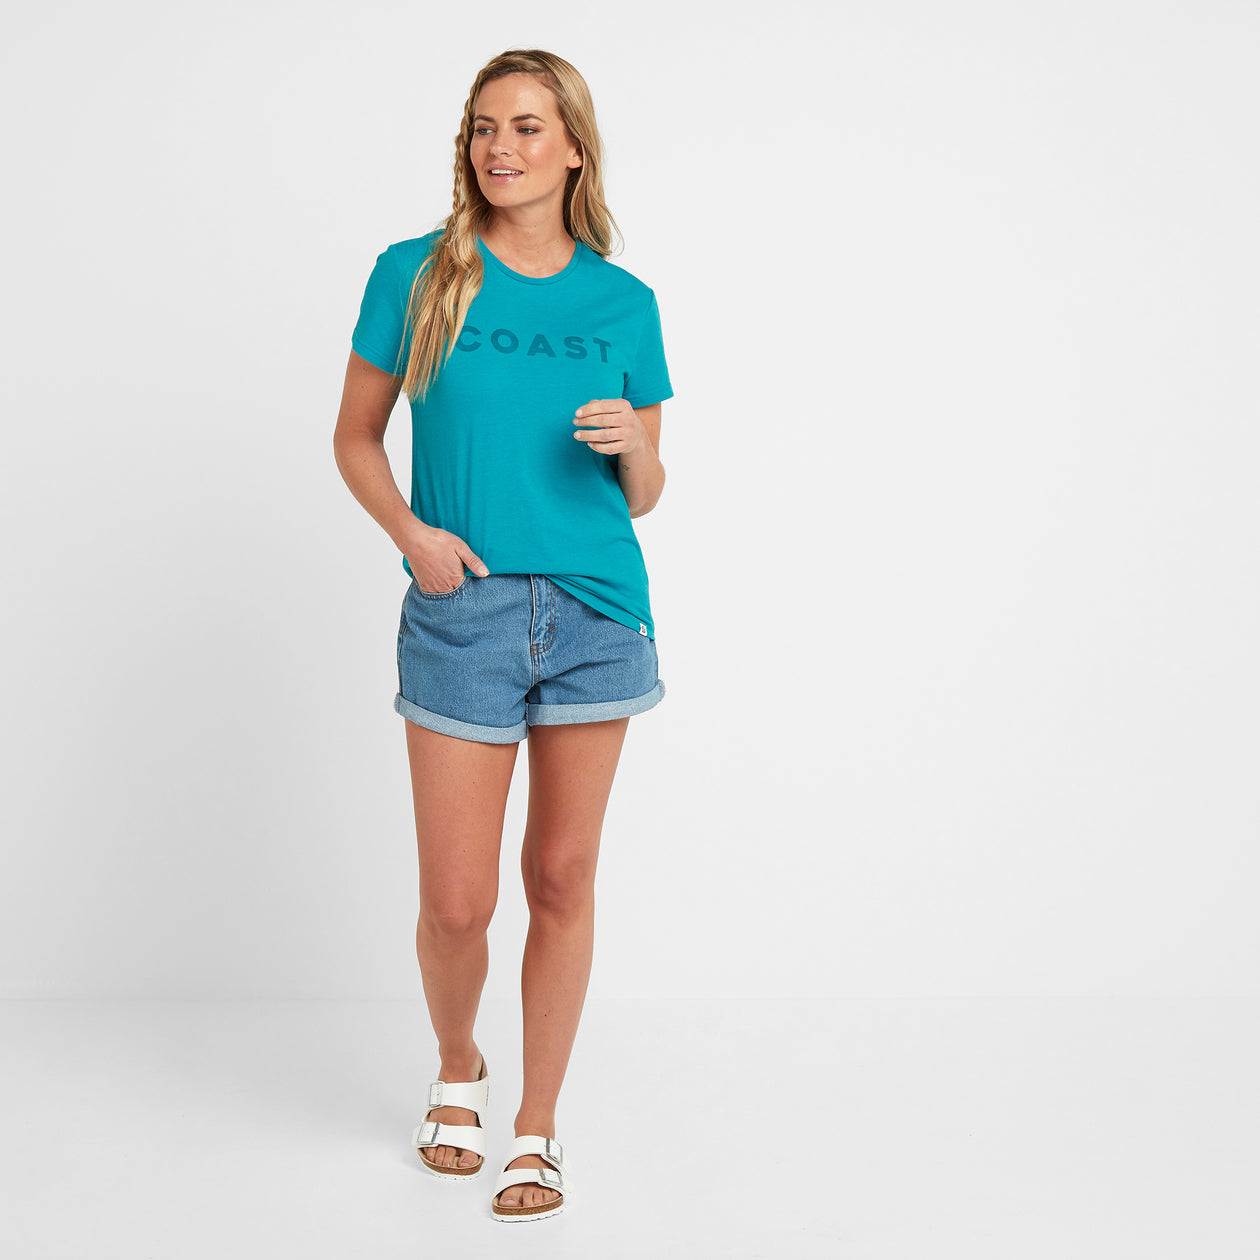 Lycett Womens T-Shirt - Turquoise Marl image 4